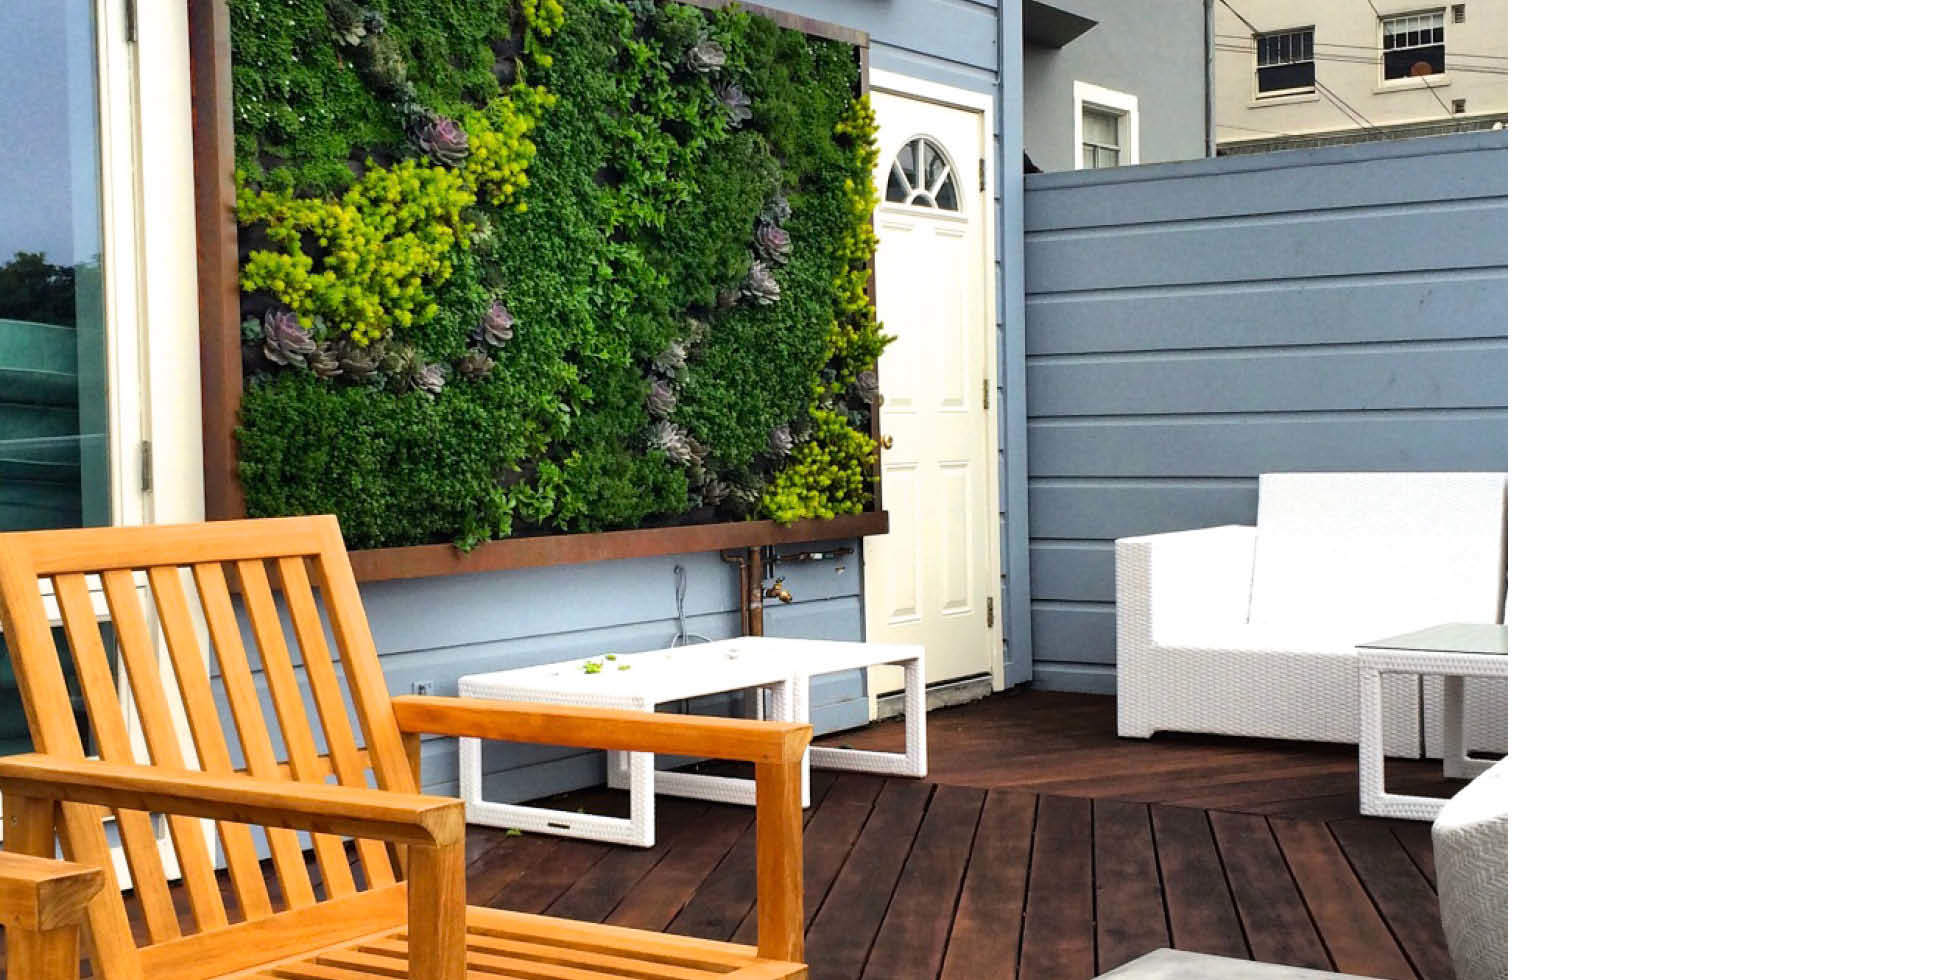 Larkin St. Residence Living Wall by Habitat Horticulture - View 1